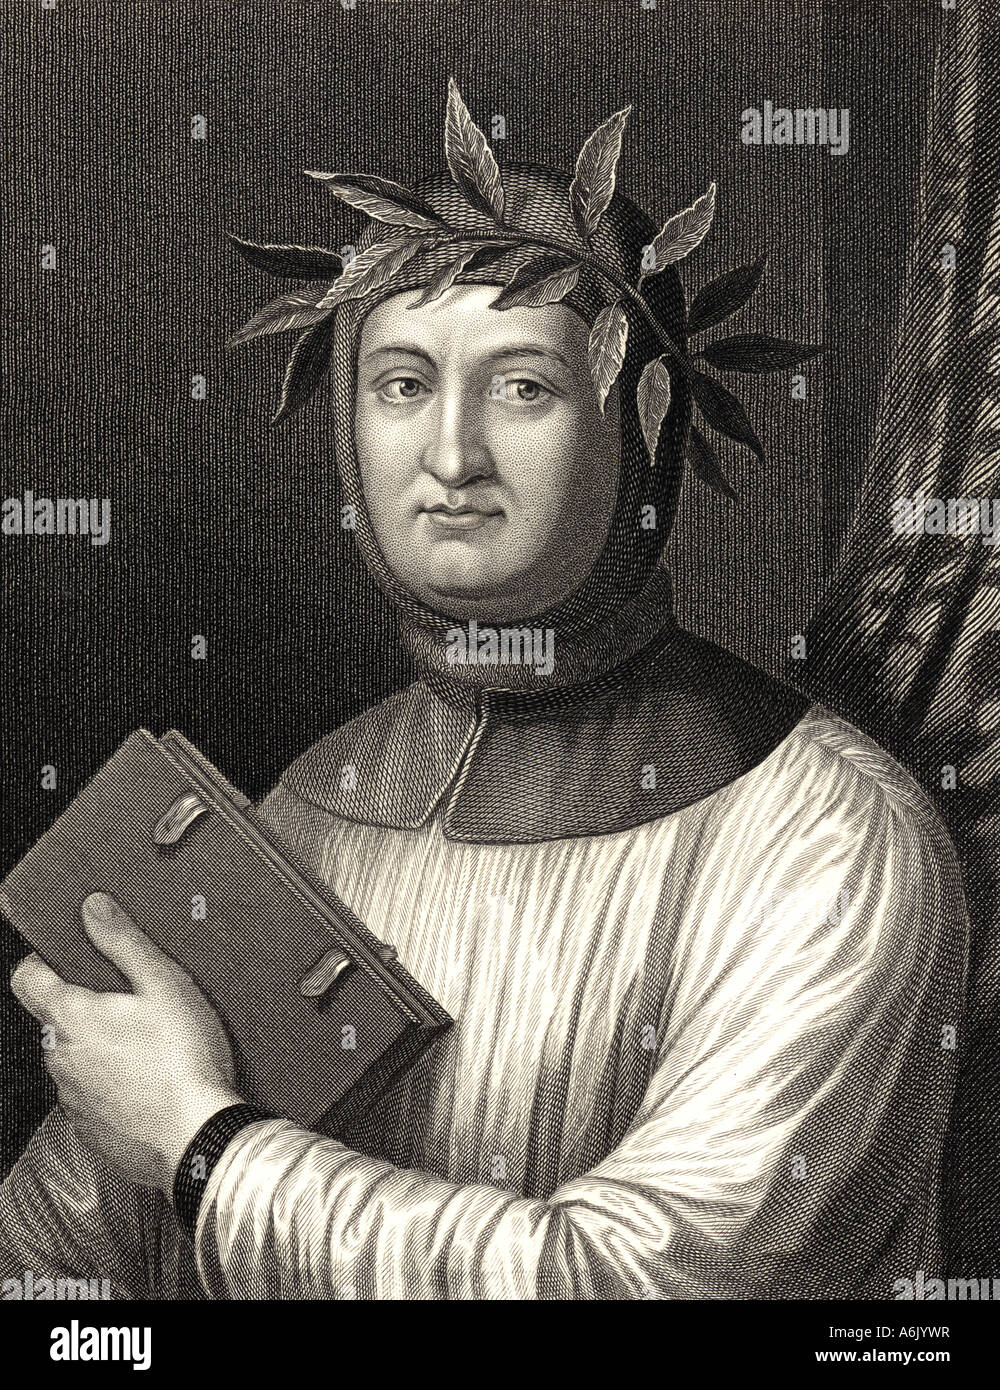 FRANCESCO PETRARCH Italian scholar poet and humanist 1304 to 1374 - Stock Image